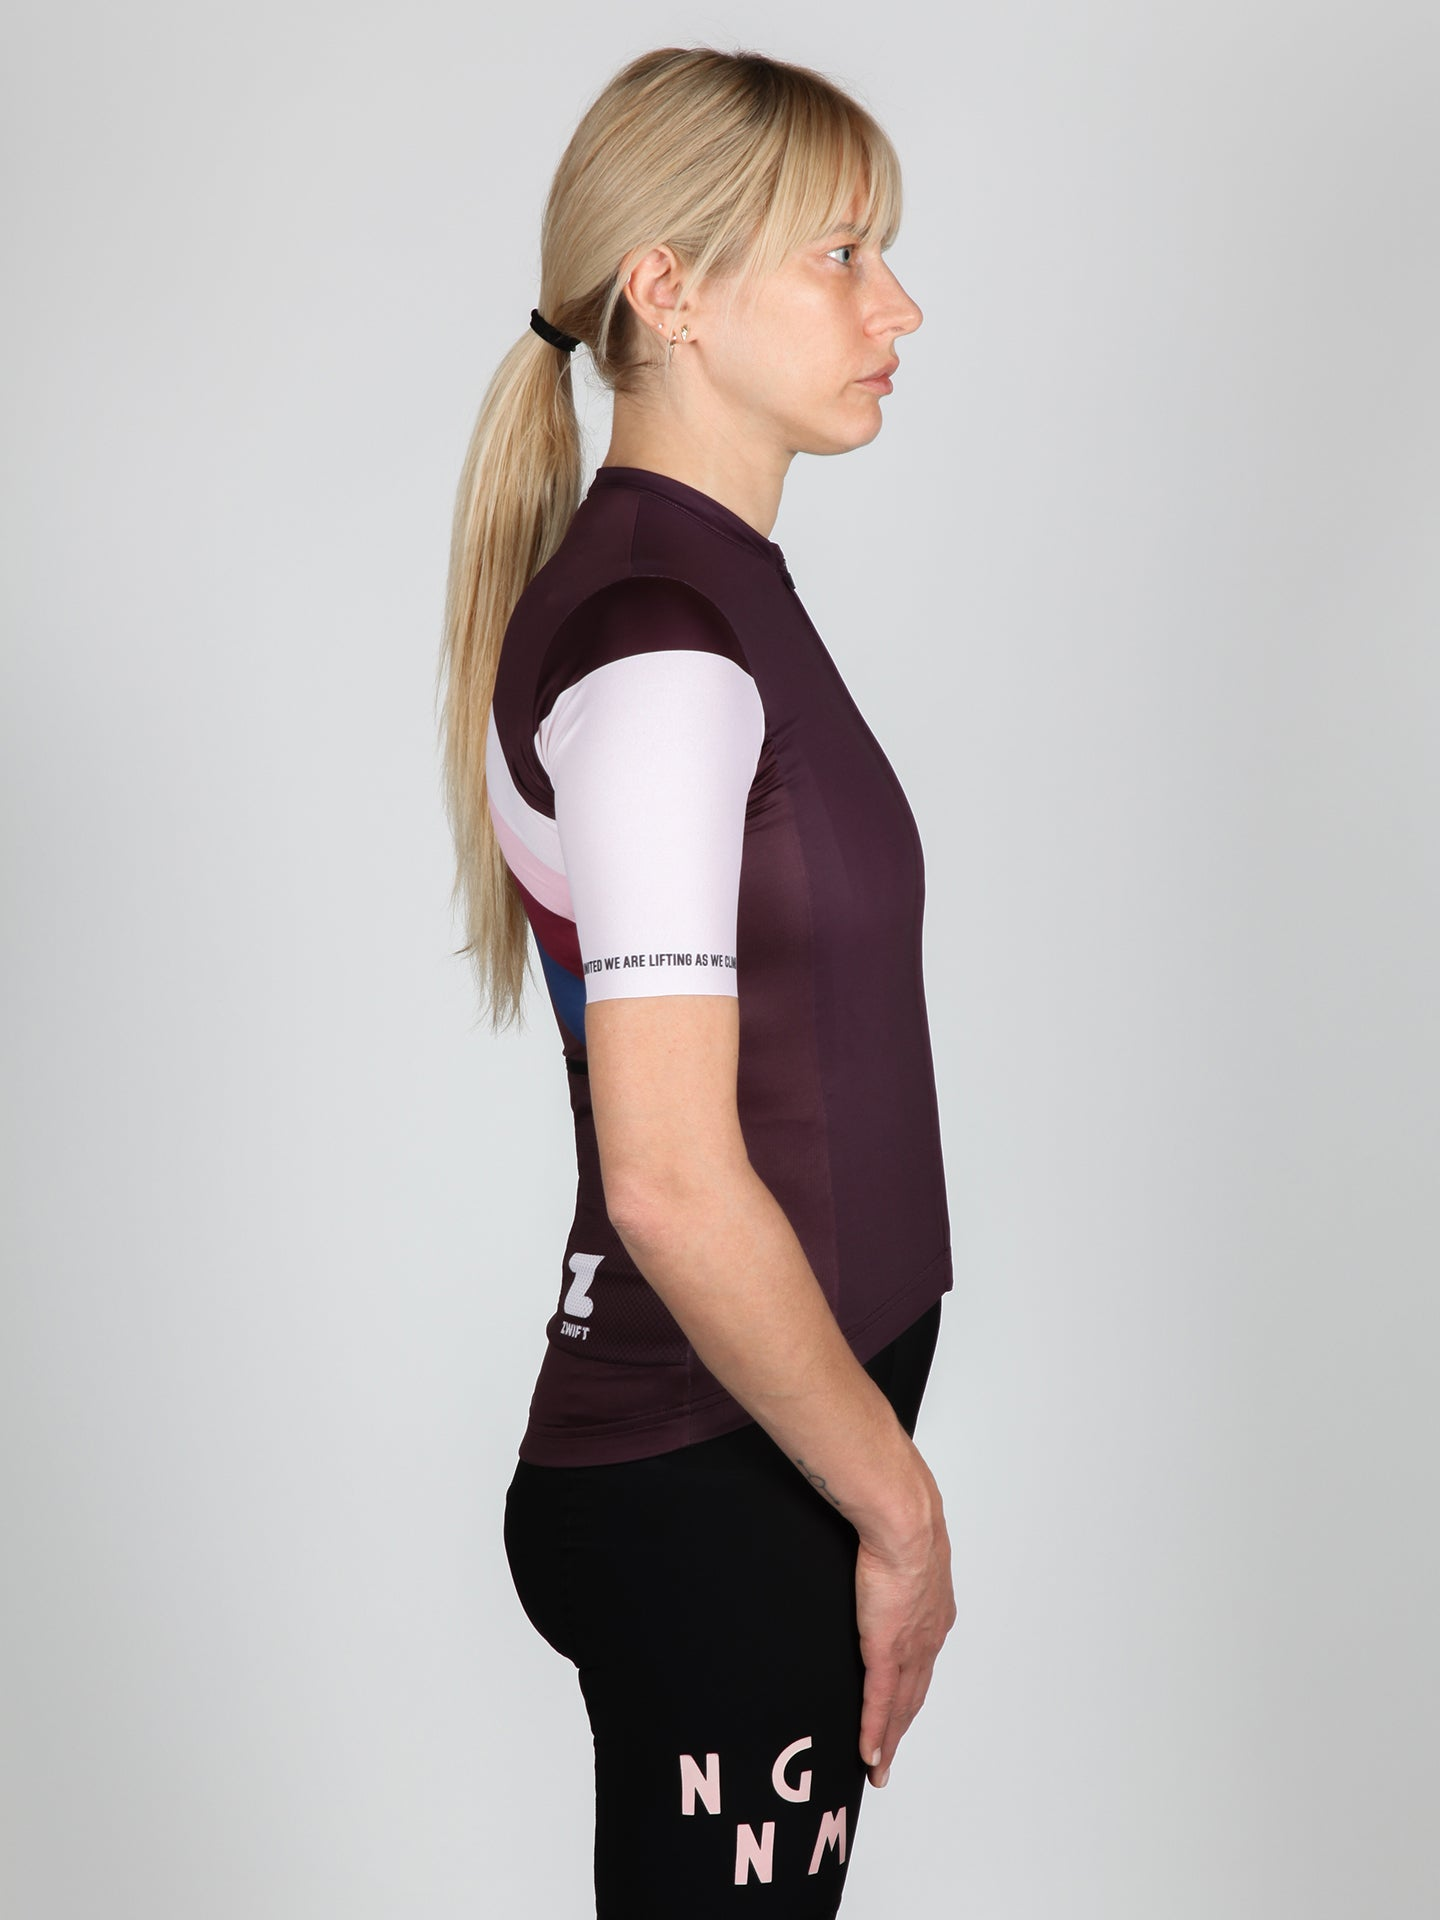 NGNM Jersey cycling ZWIFT aubergine